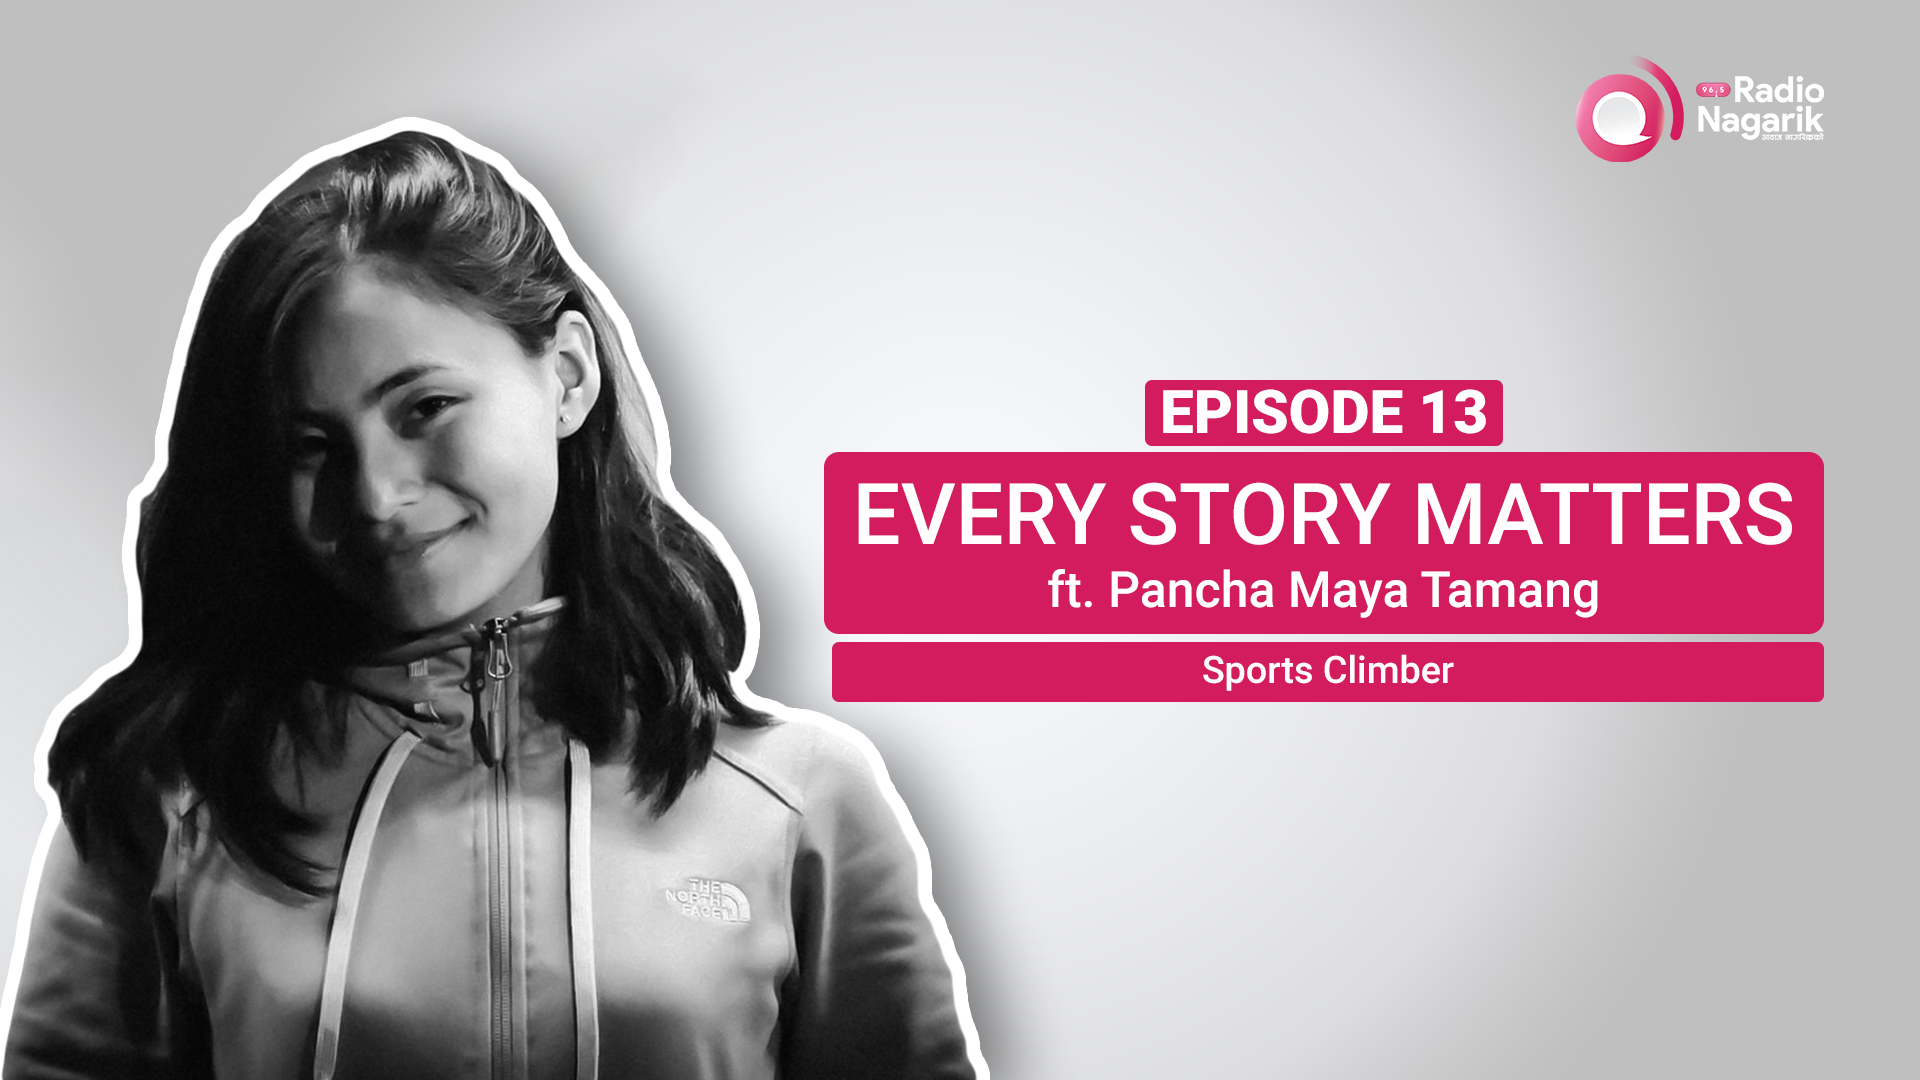 The Next Olympian: Nepal is rooting for Pancha Maya Tamang | Nepali Podcast